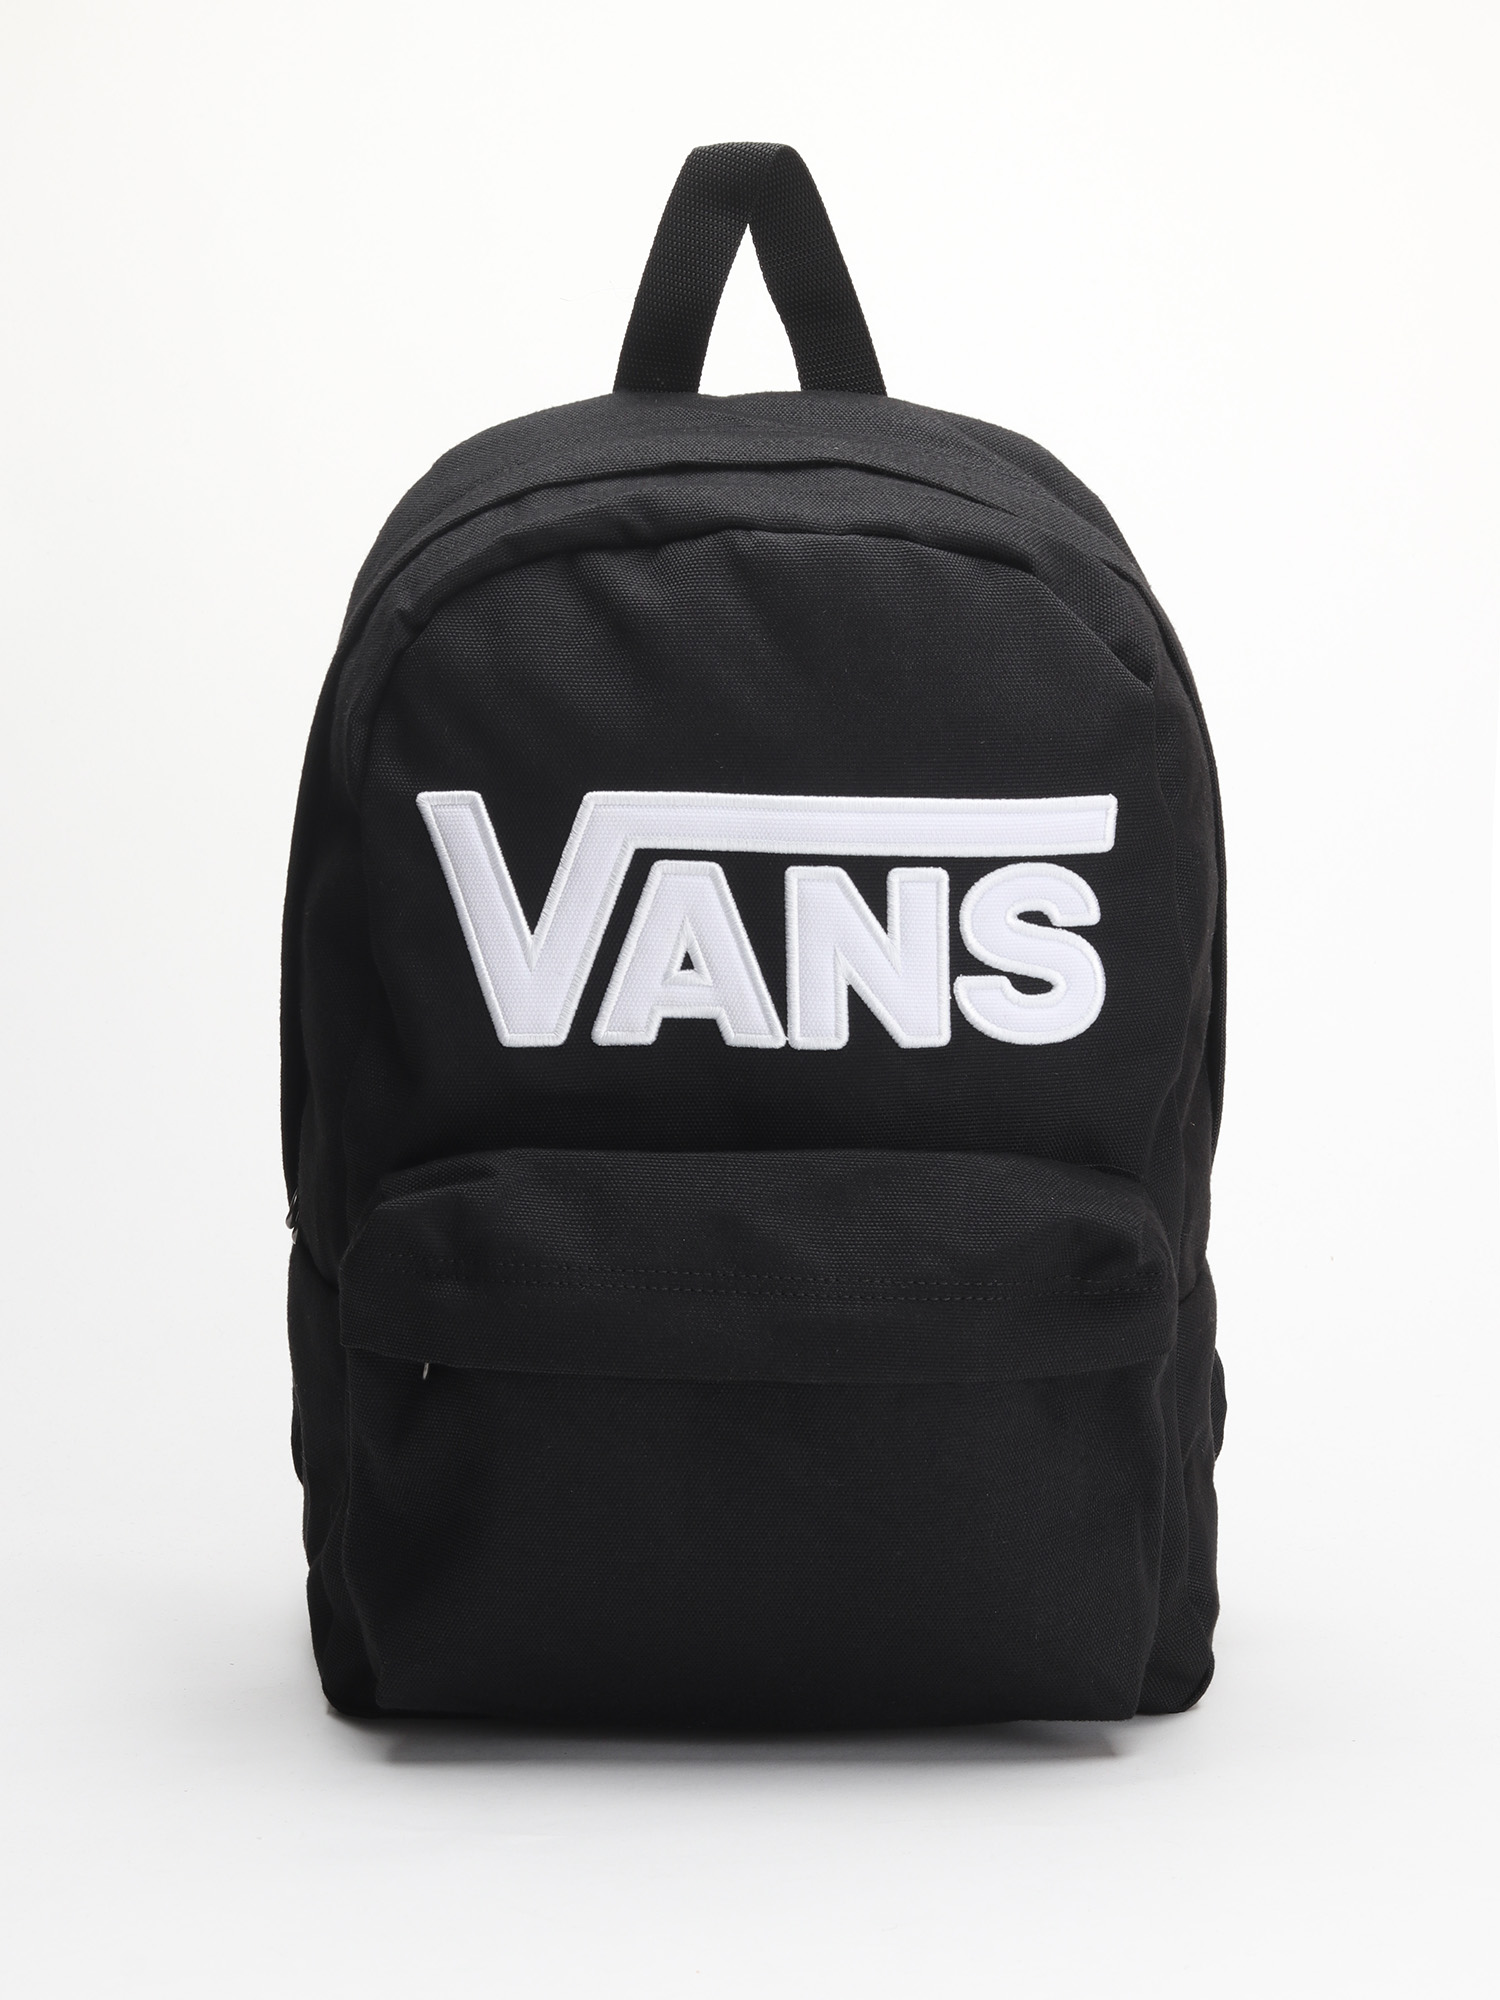 Ruksak Vans By New Skool Backpac Black/White Čierna